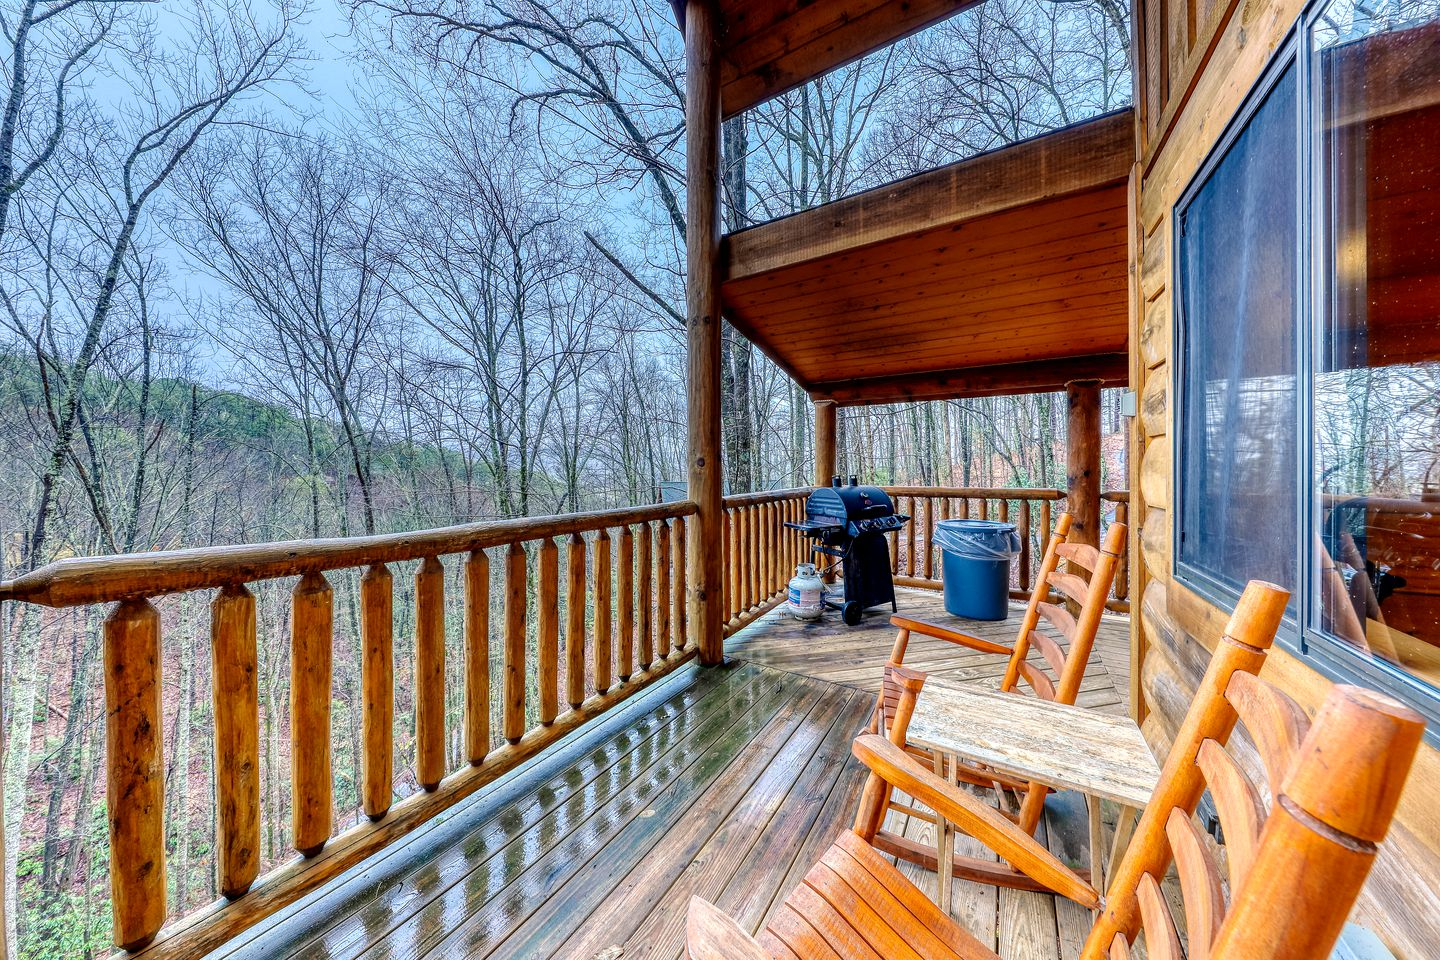 Cabin rental for a family getaway in Tennessee